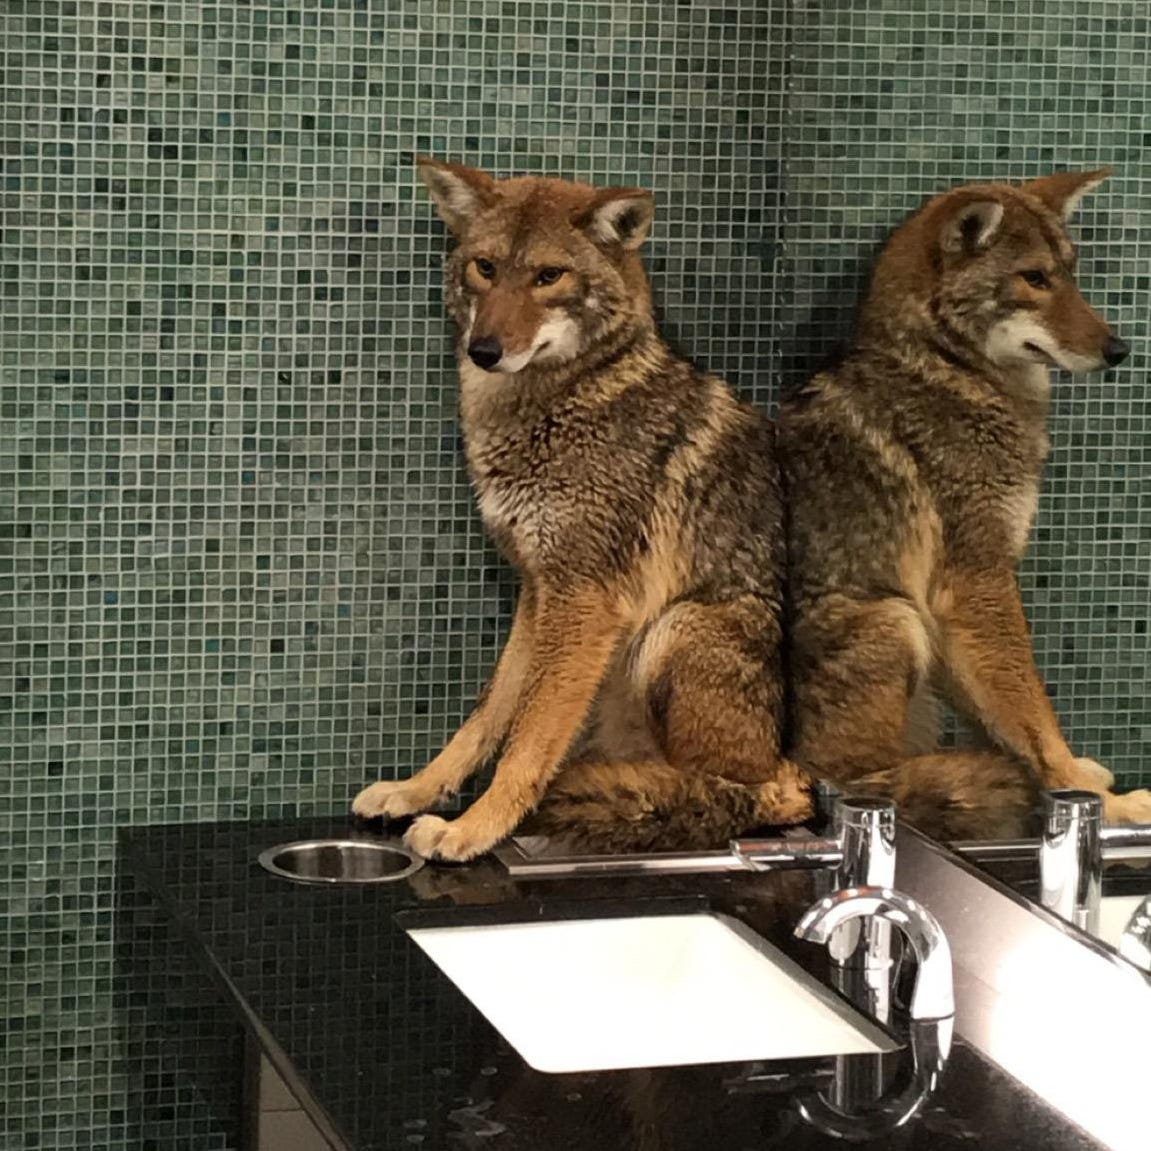 How a coyote got into Nashville's Music City Center